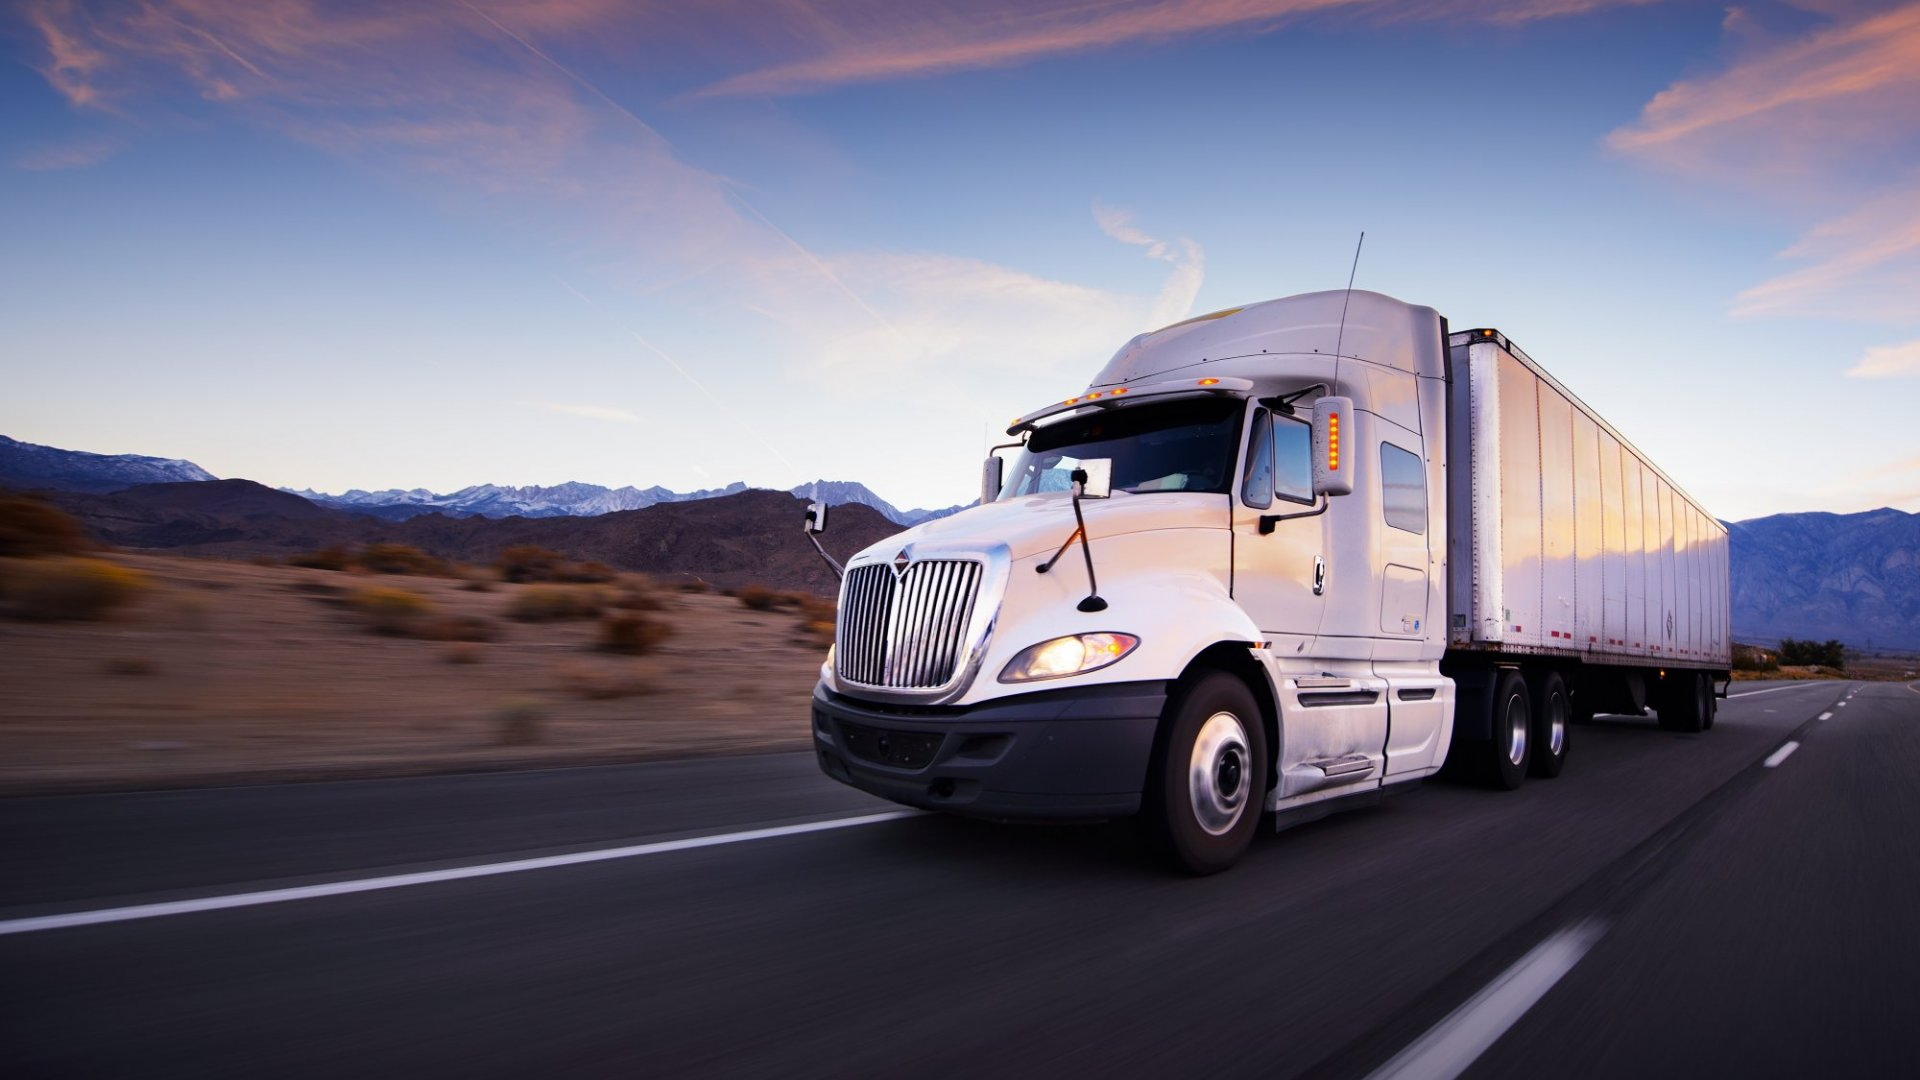 Amazon Is Secretly Building an 'Uber for Trucking' App